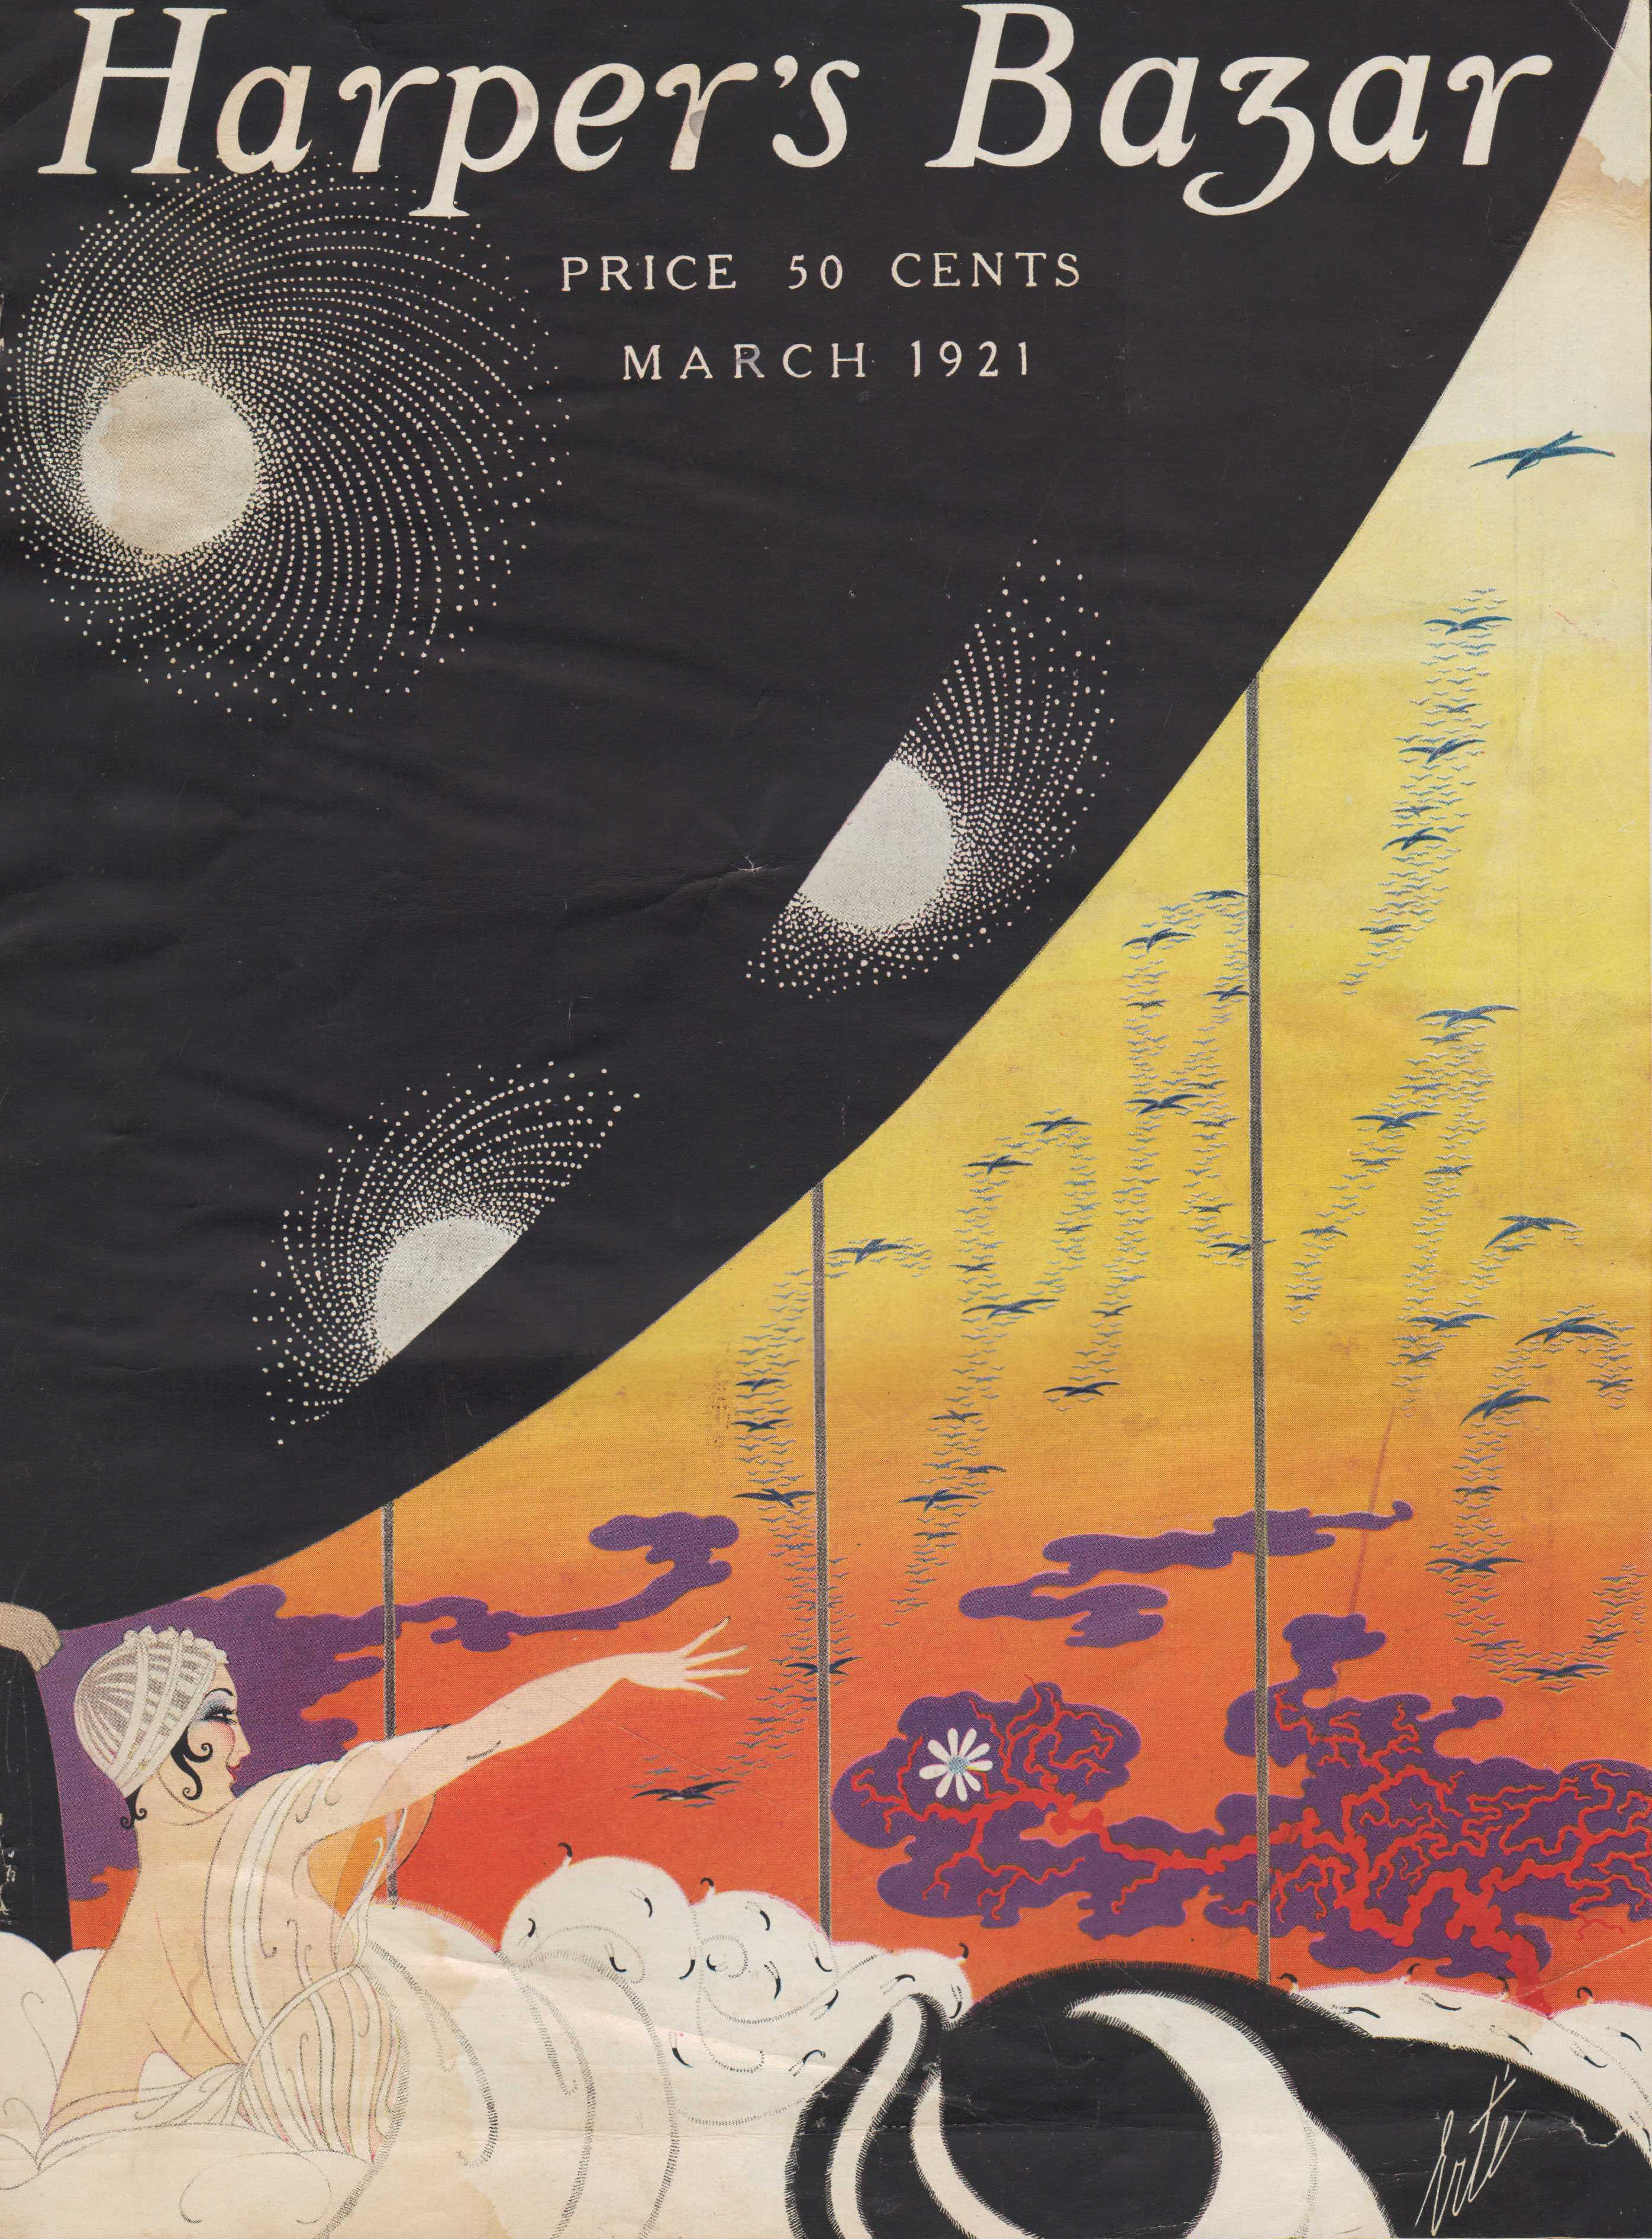 Image for Harper's Bazar (Harper's Bazaar). March 1921 - Cover Only